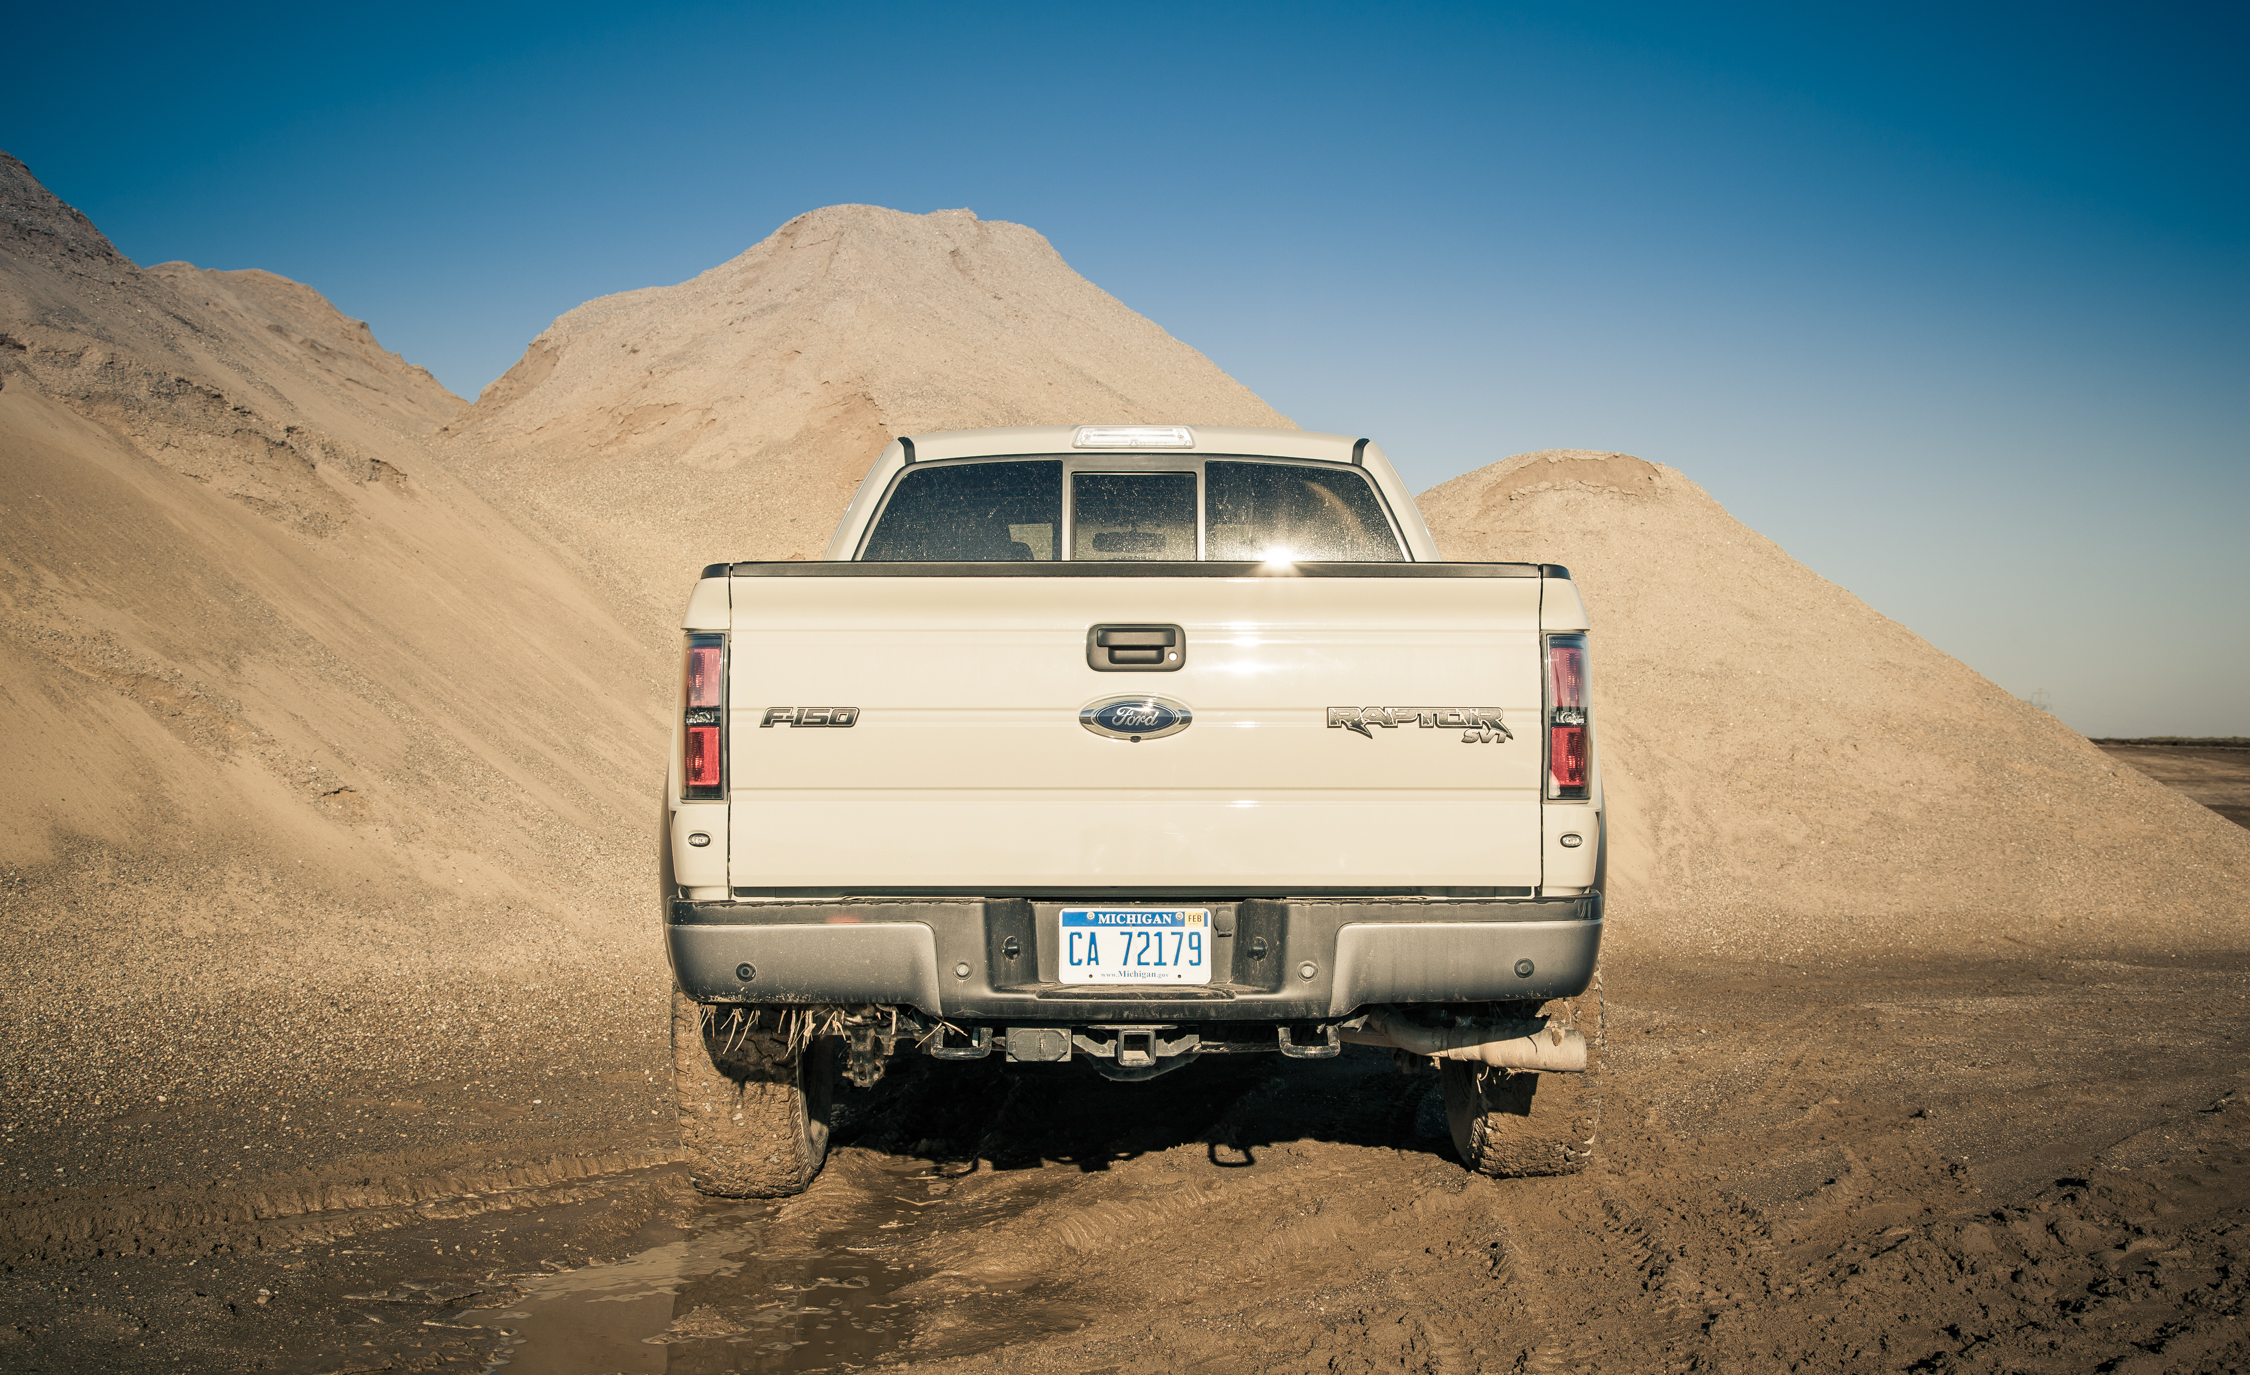 2013 Ford F 150 SVT Raptor Exterior Rear (Photo 4 of 39)